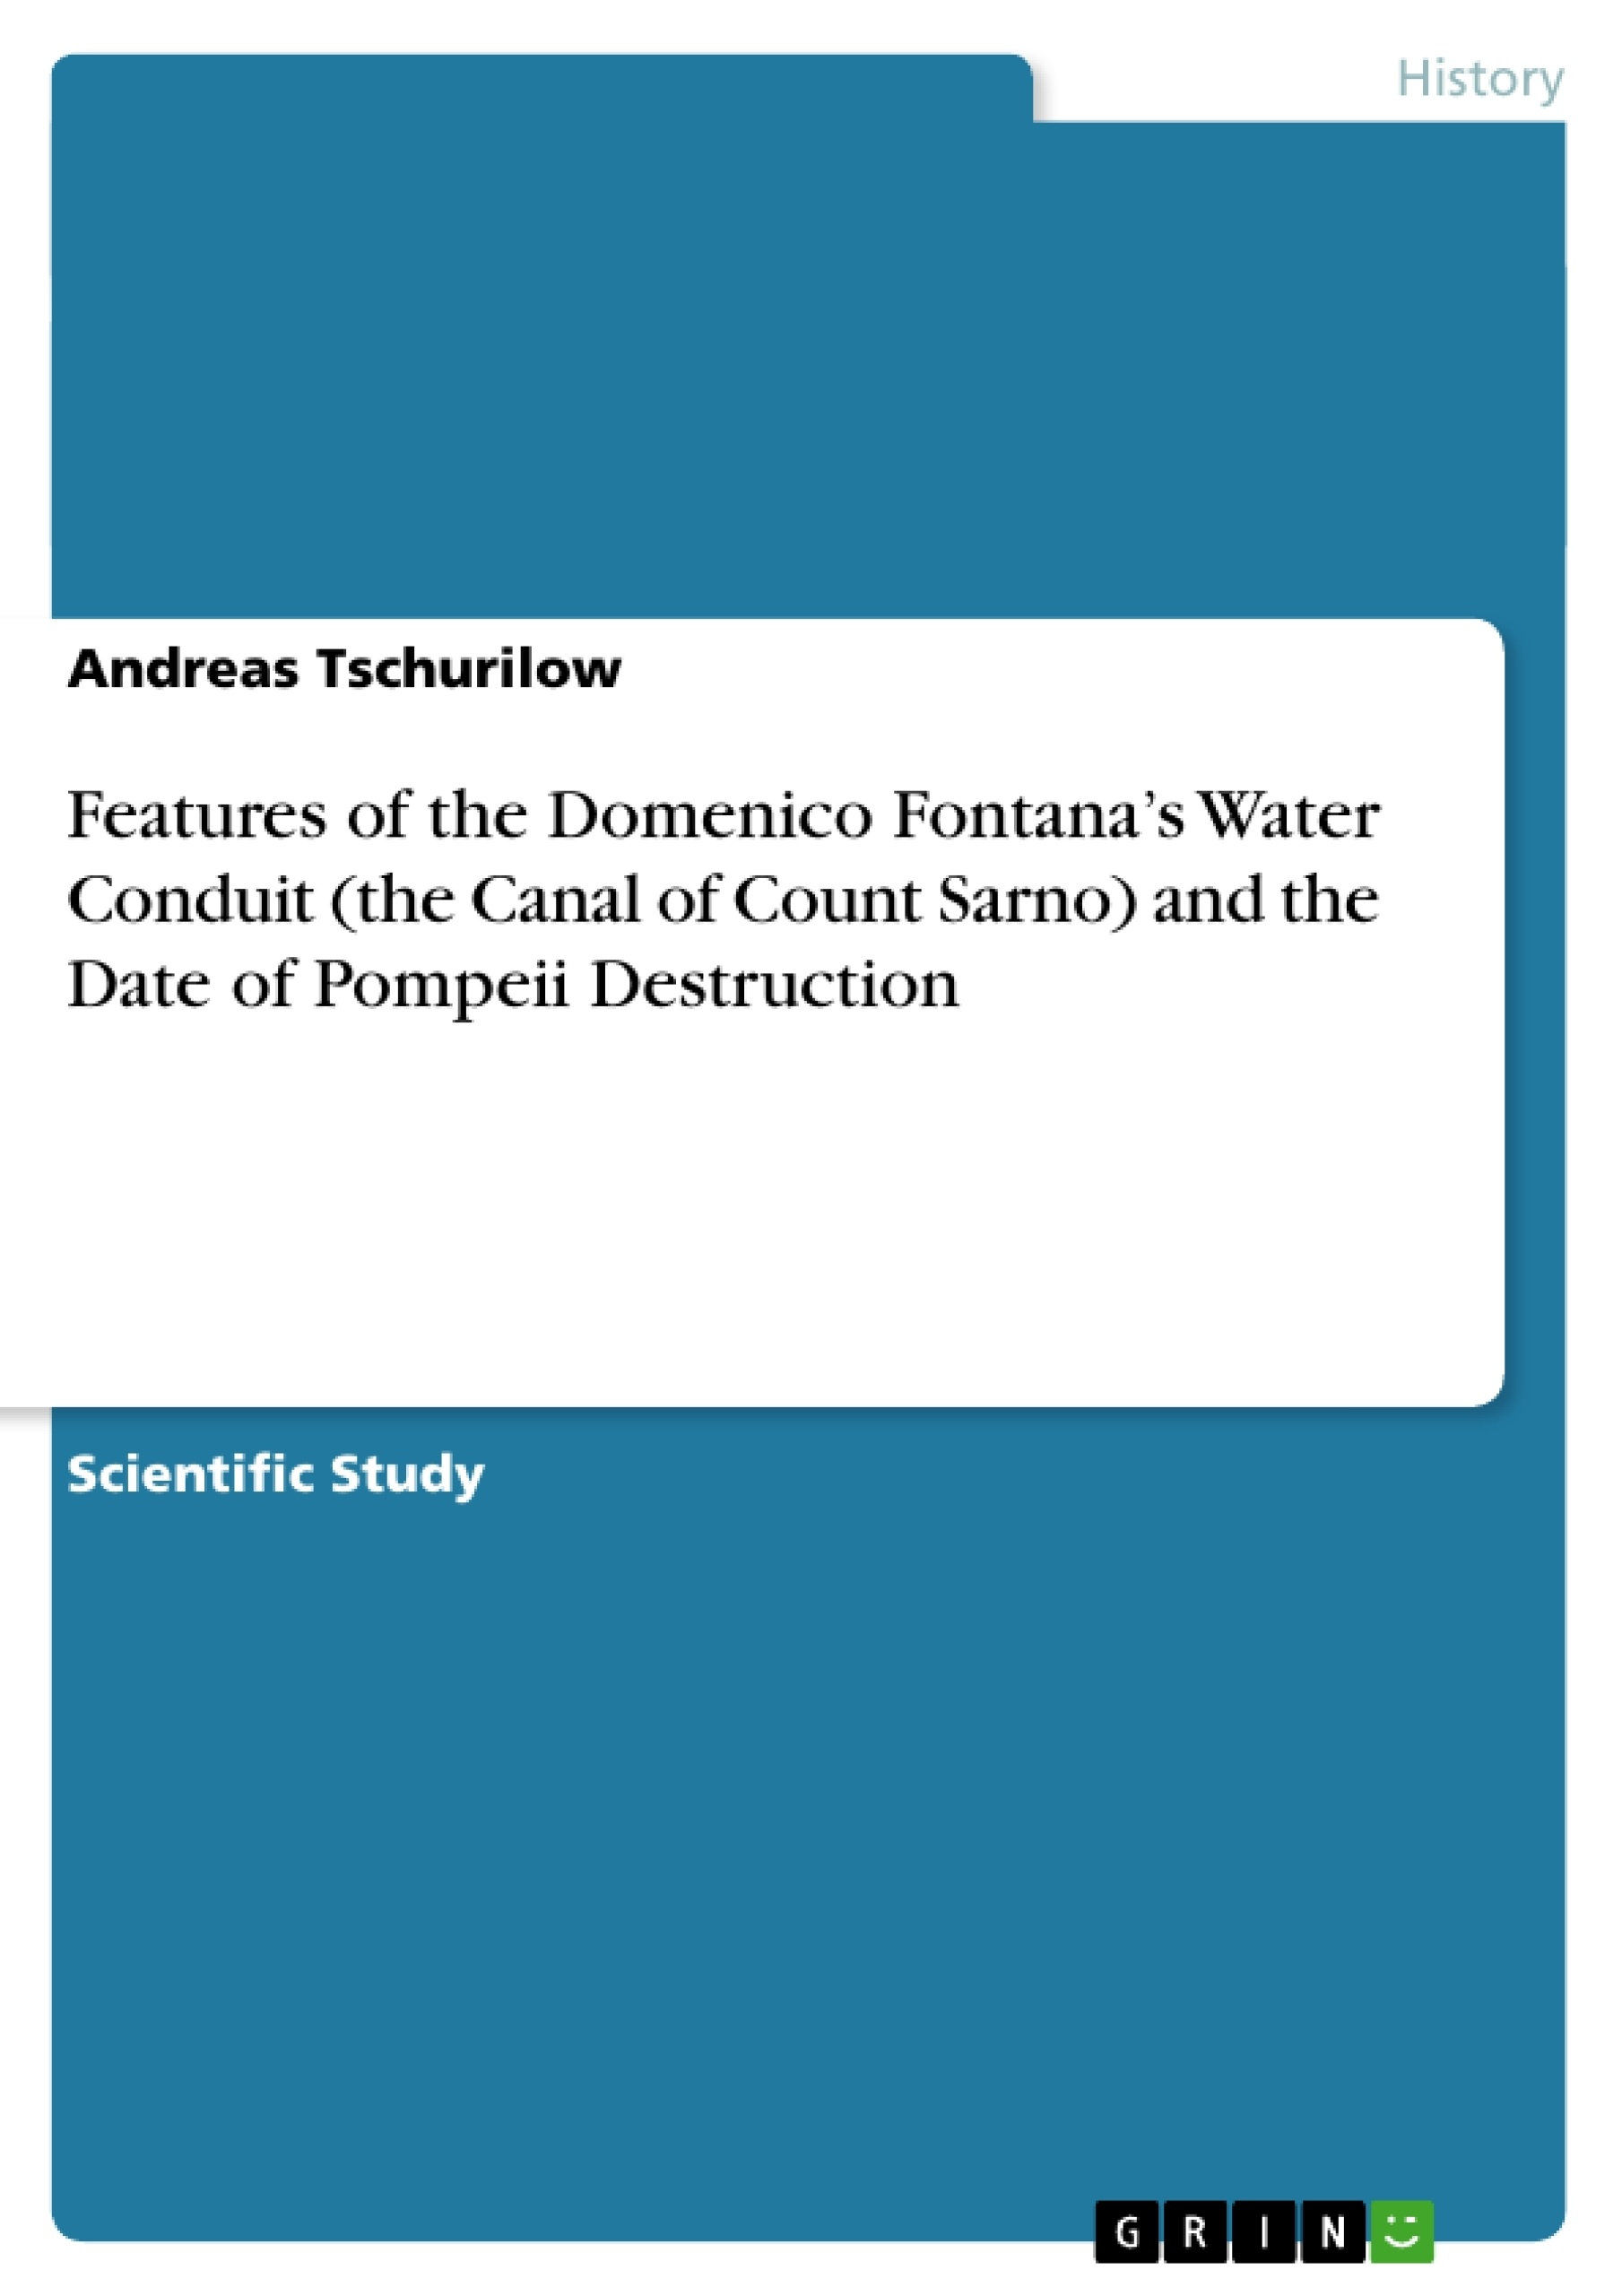 Title: Features of the Domenico Fontana's Water Conduit (the Canal of Count Sarno) and the Date of Pompeii Destruction